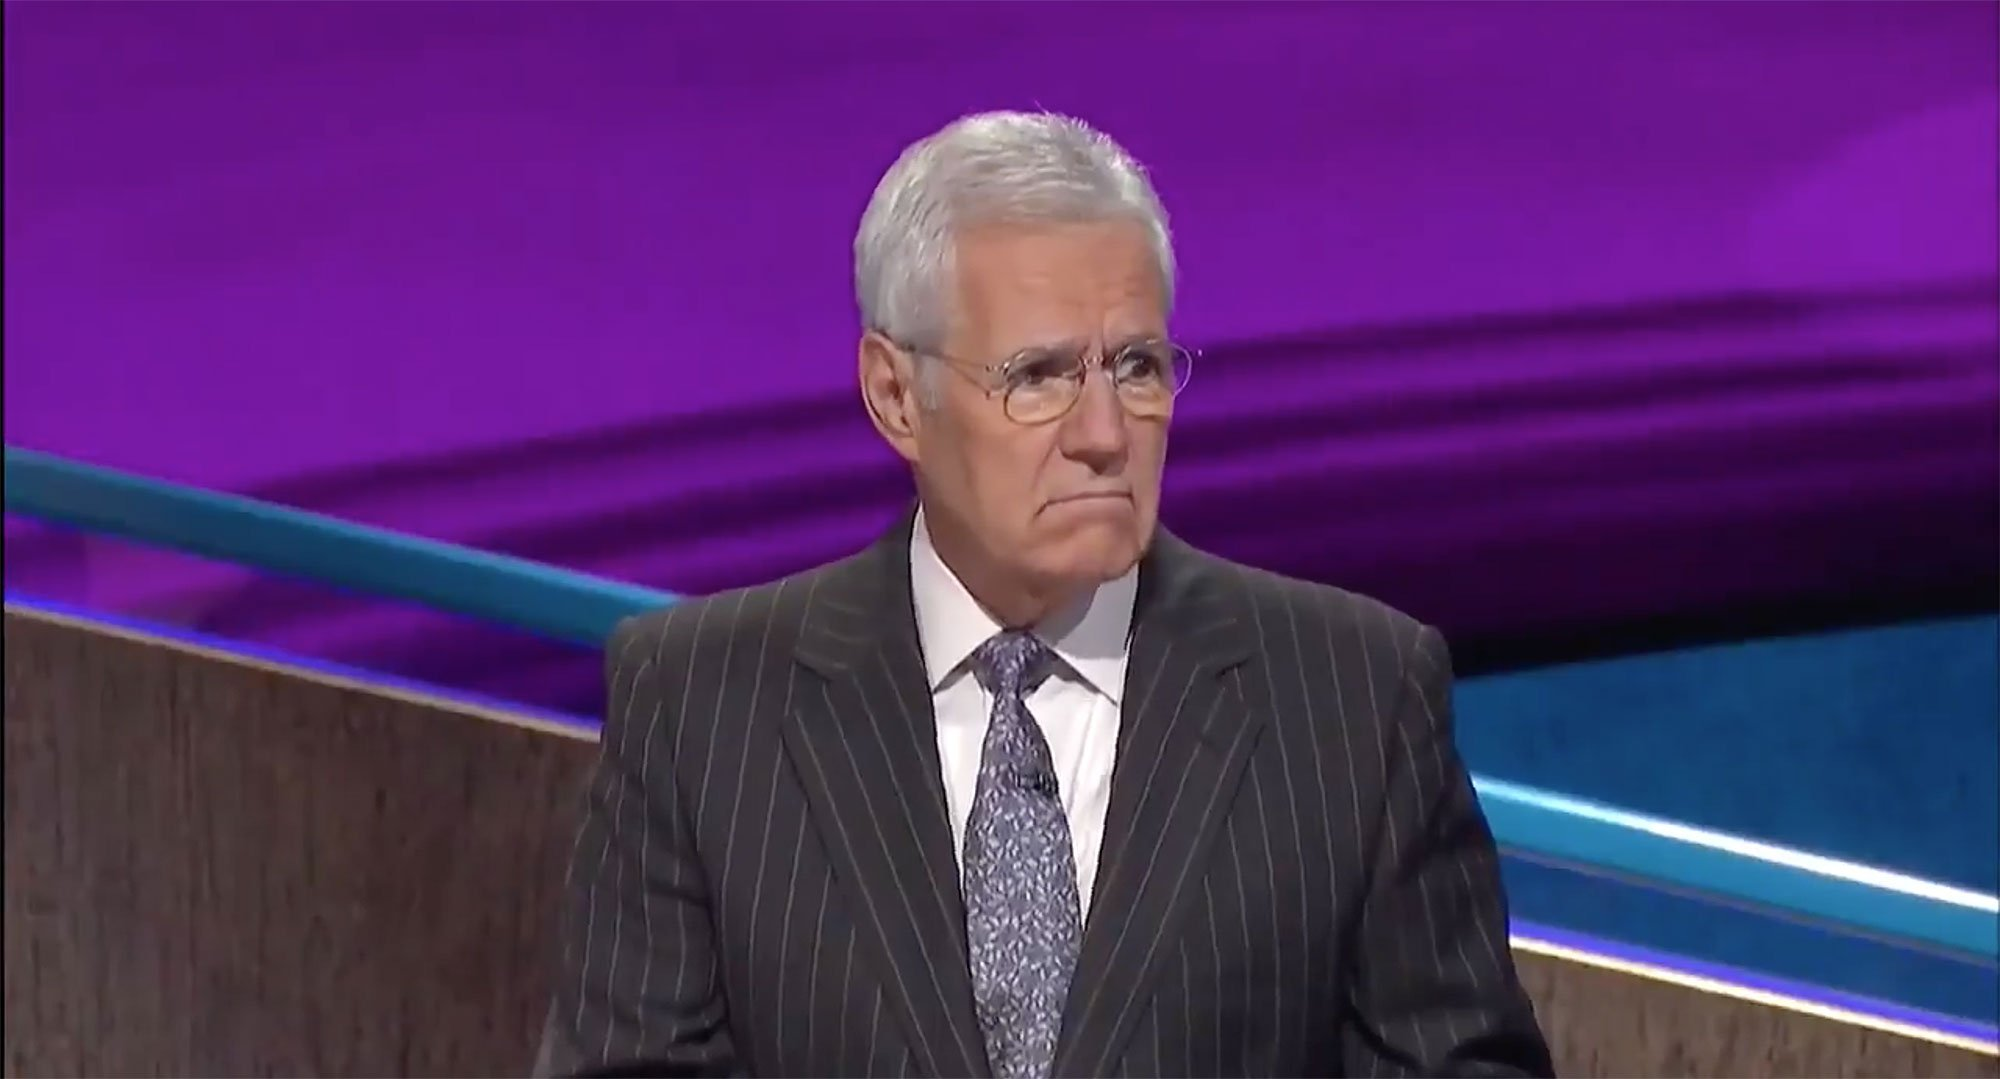 Jeopardy contestants have no clue about football